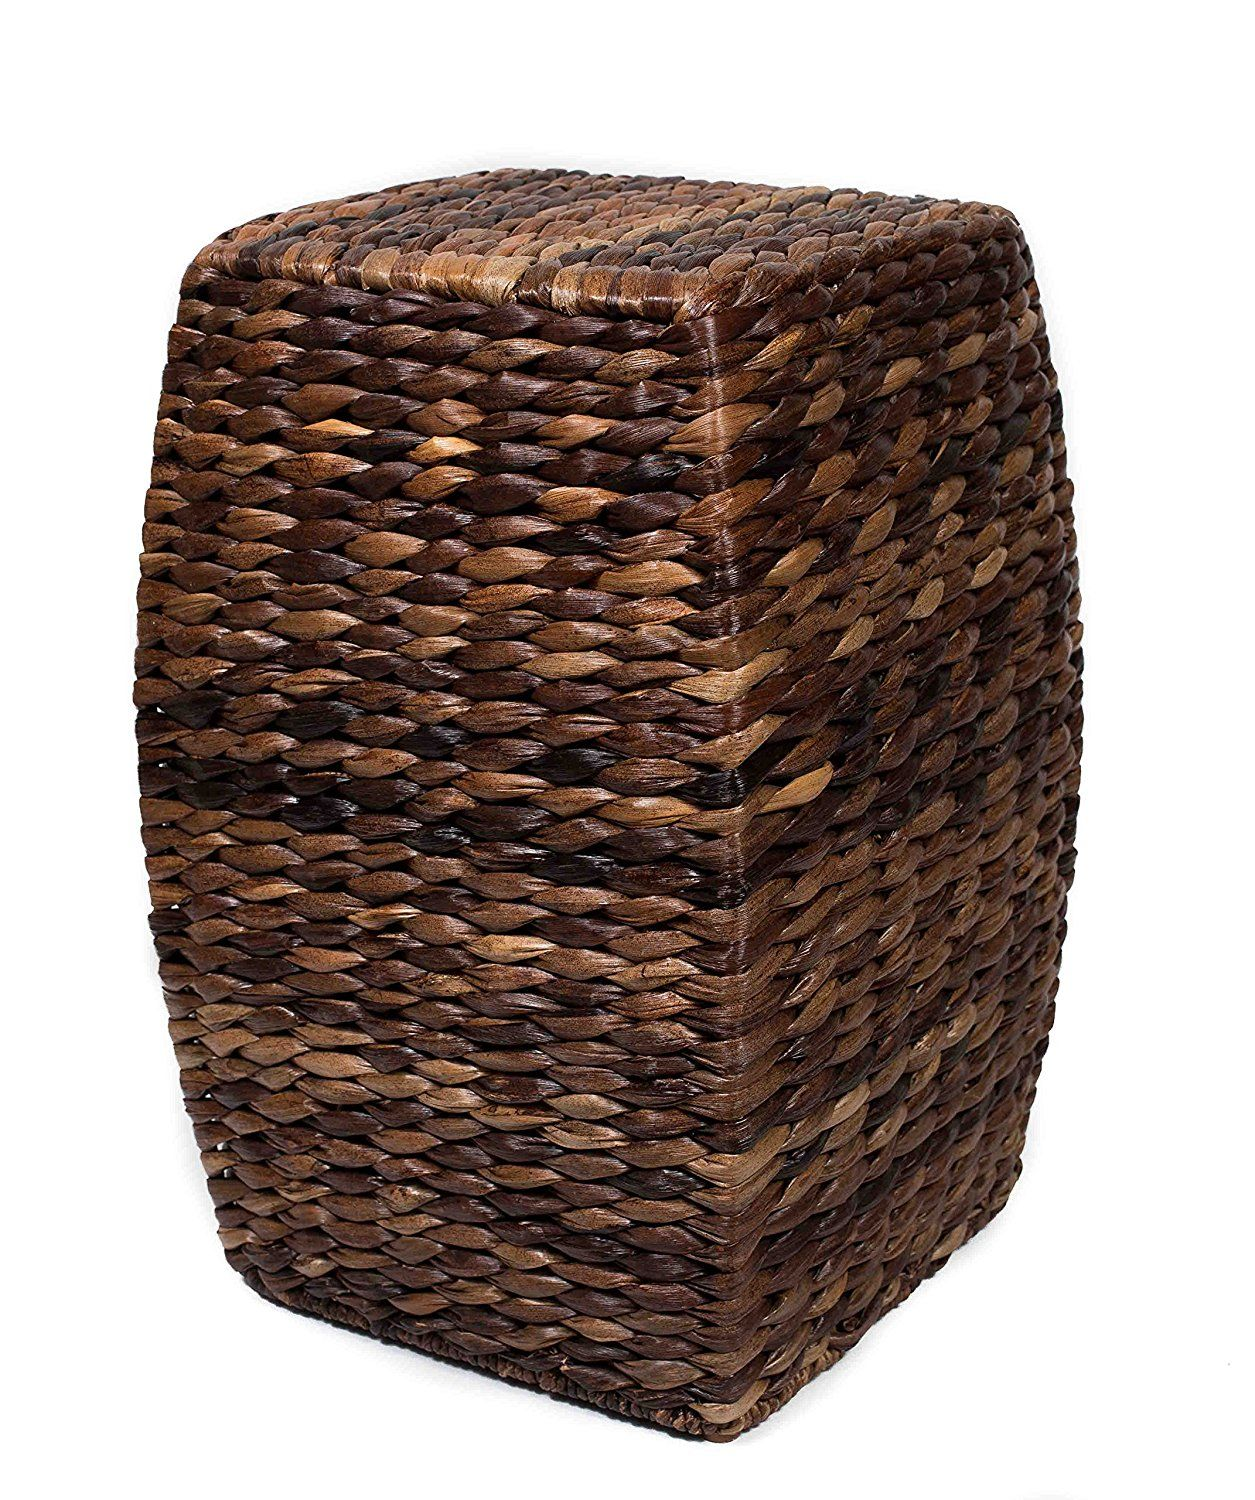 Furnitures Bird Rock Home Seagrass Accent Stool That Made Of Hand